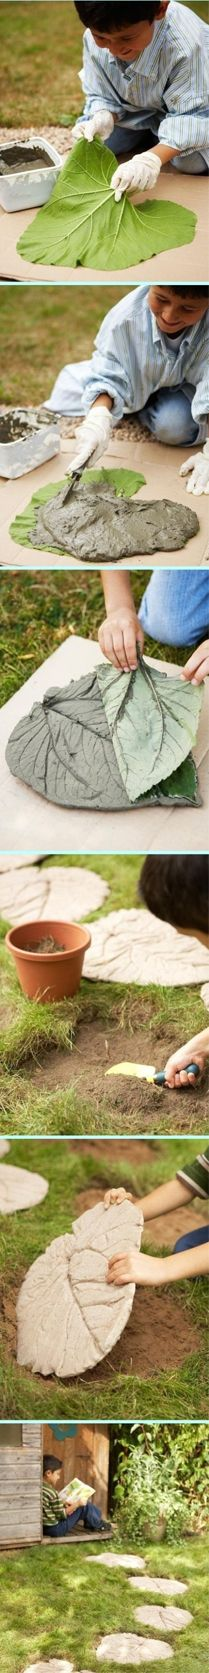 Homemade stones- great idea and we have so many giant elephant ears